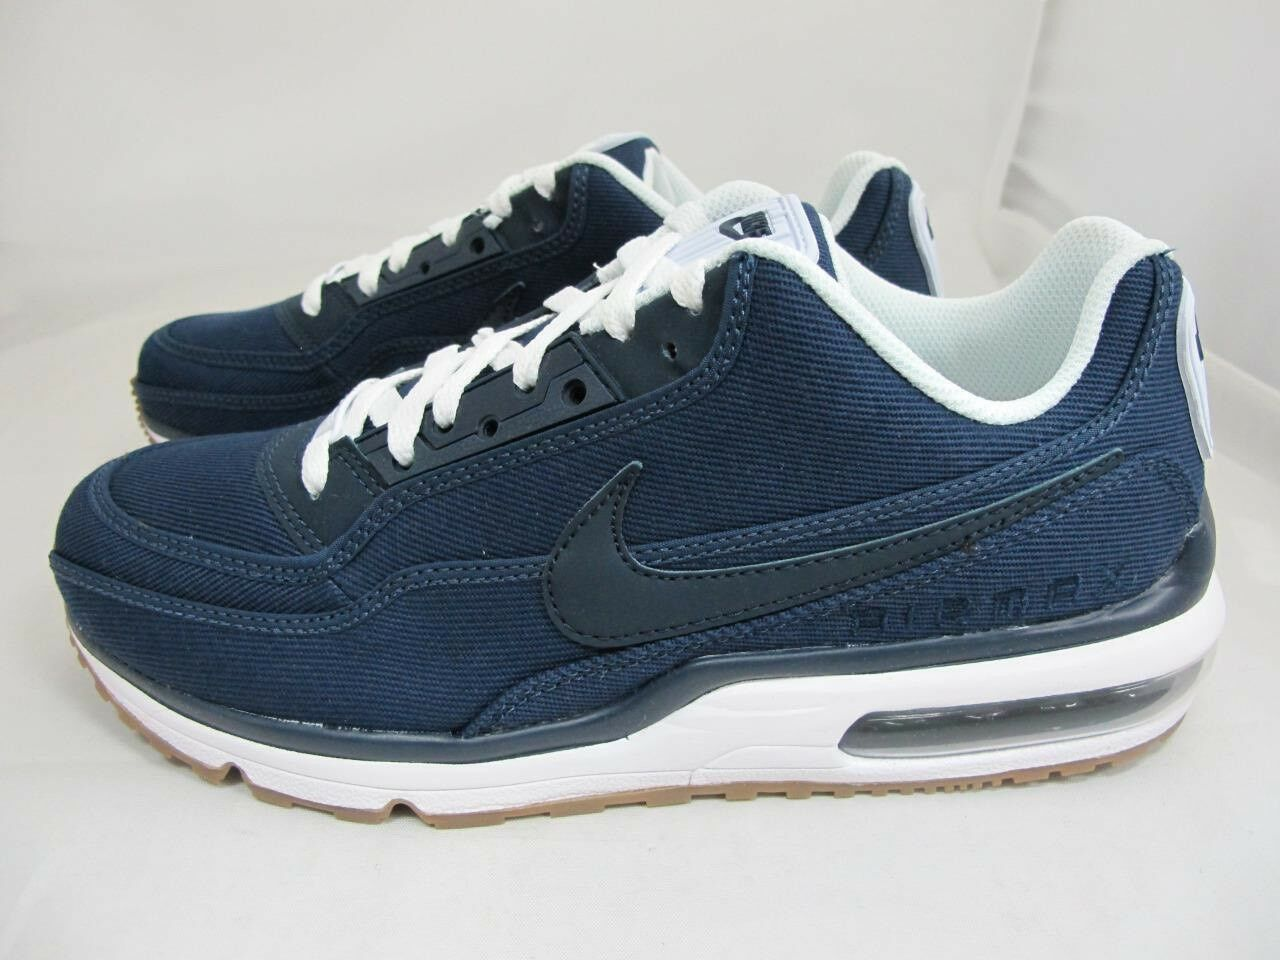 Nike Air Max azul LTD 3 txt denim azul Max marino Blanco Obsidiana chicle 746379-4SZ 8,5 cbcd2f